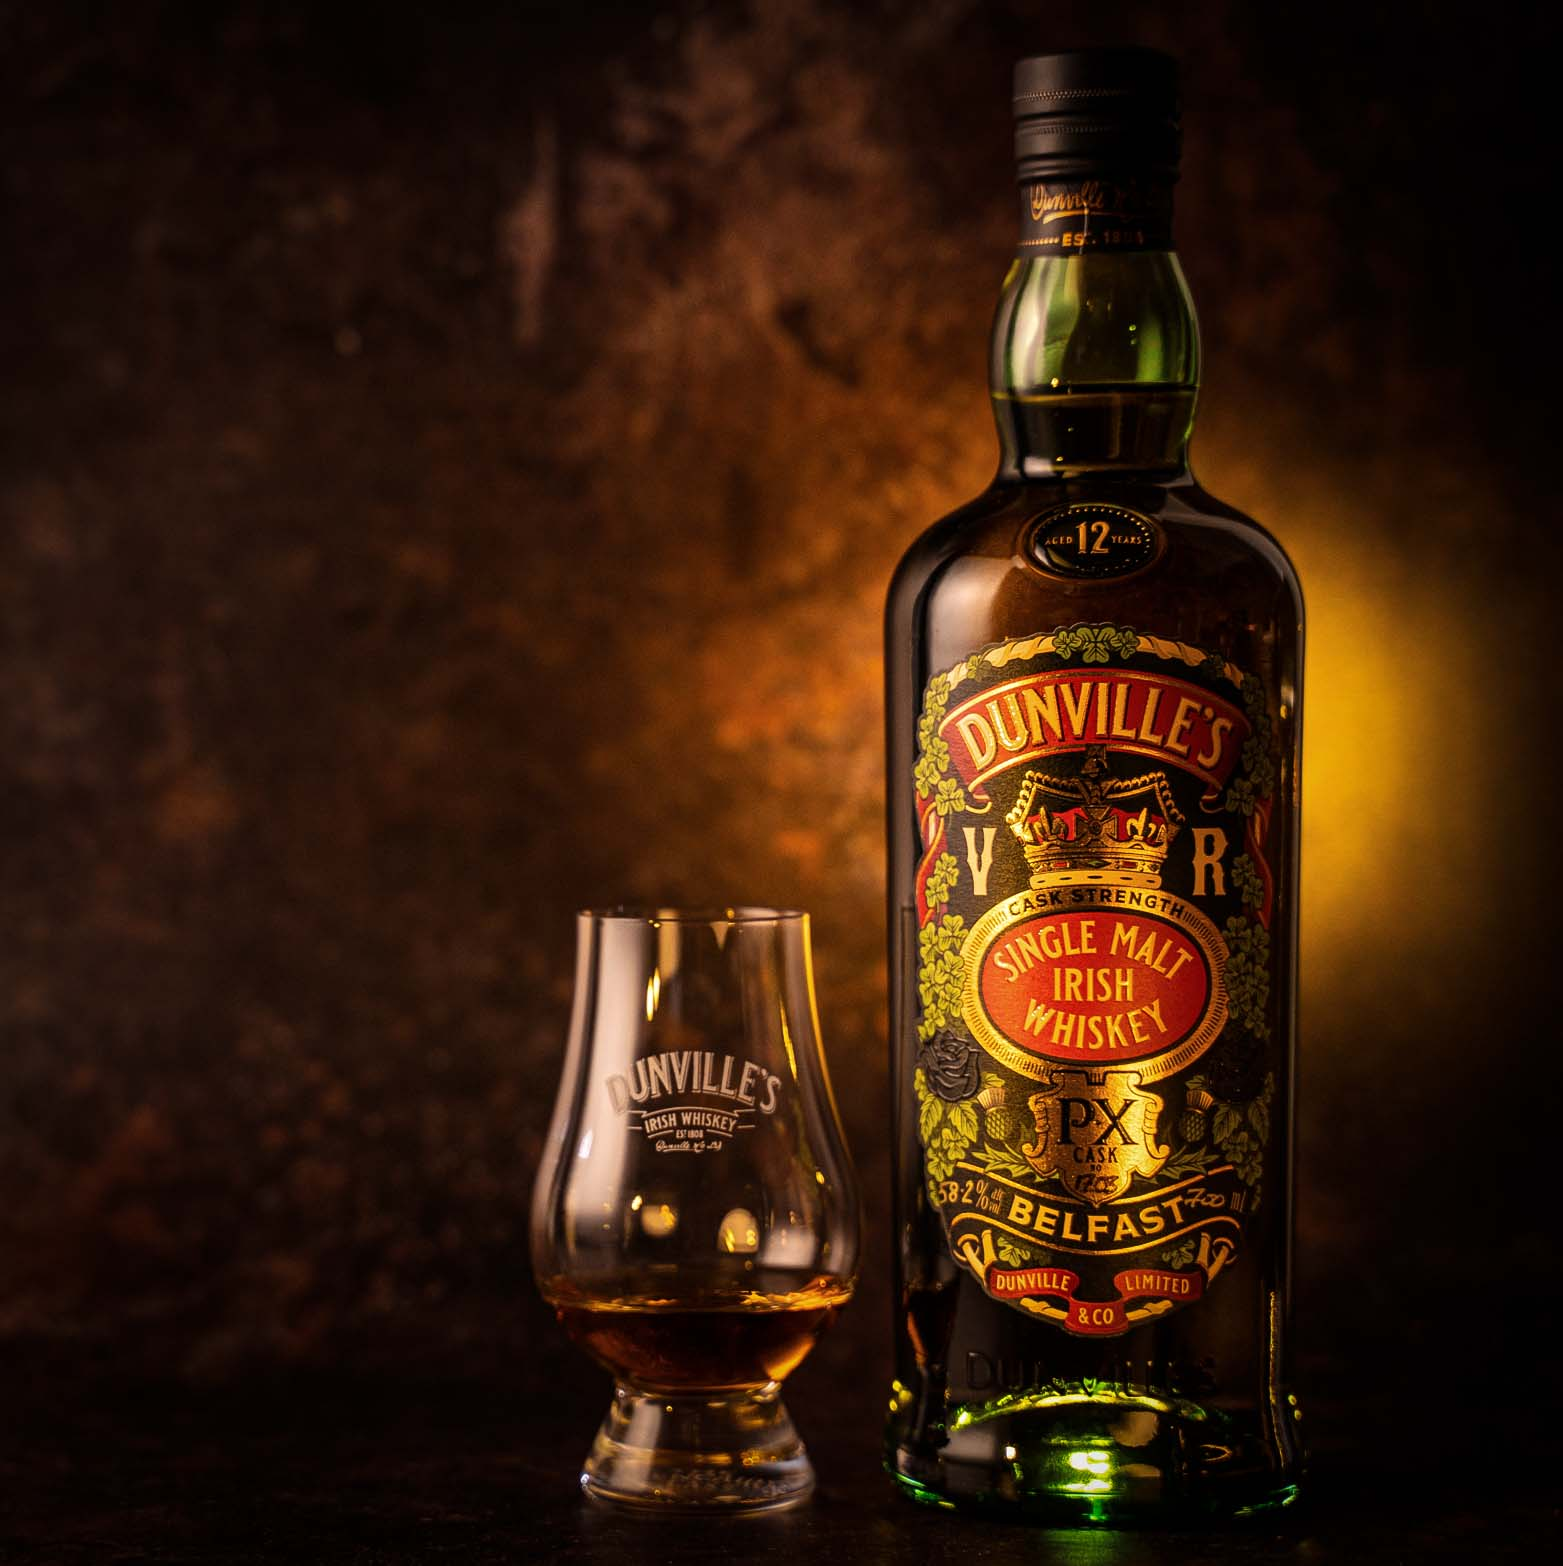 Third PX Cask Strength release from Dunville's Irish Whiskey